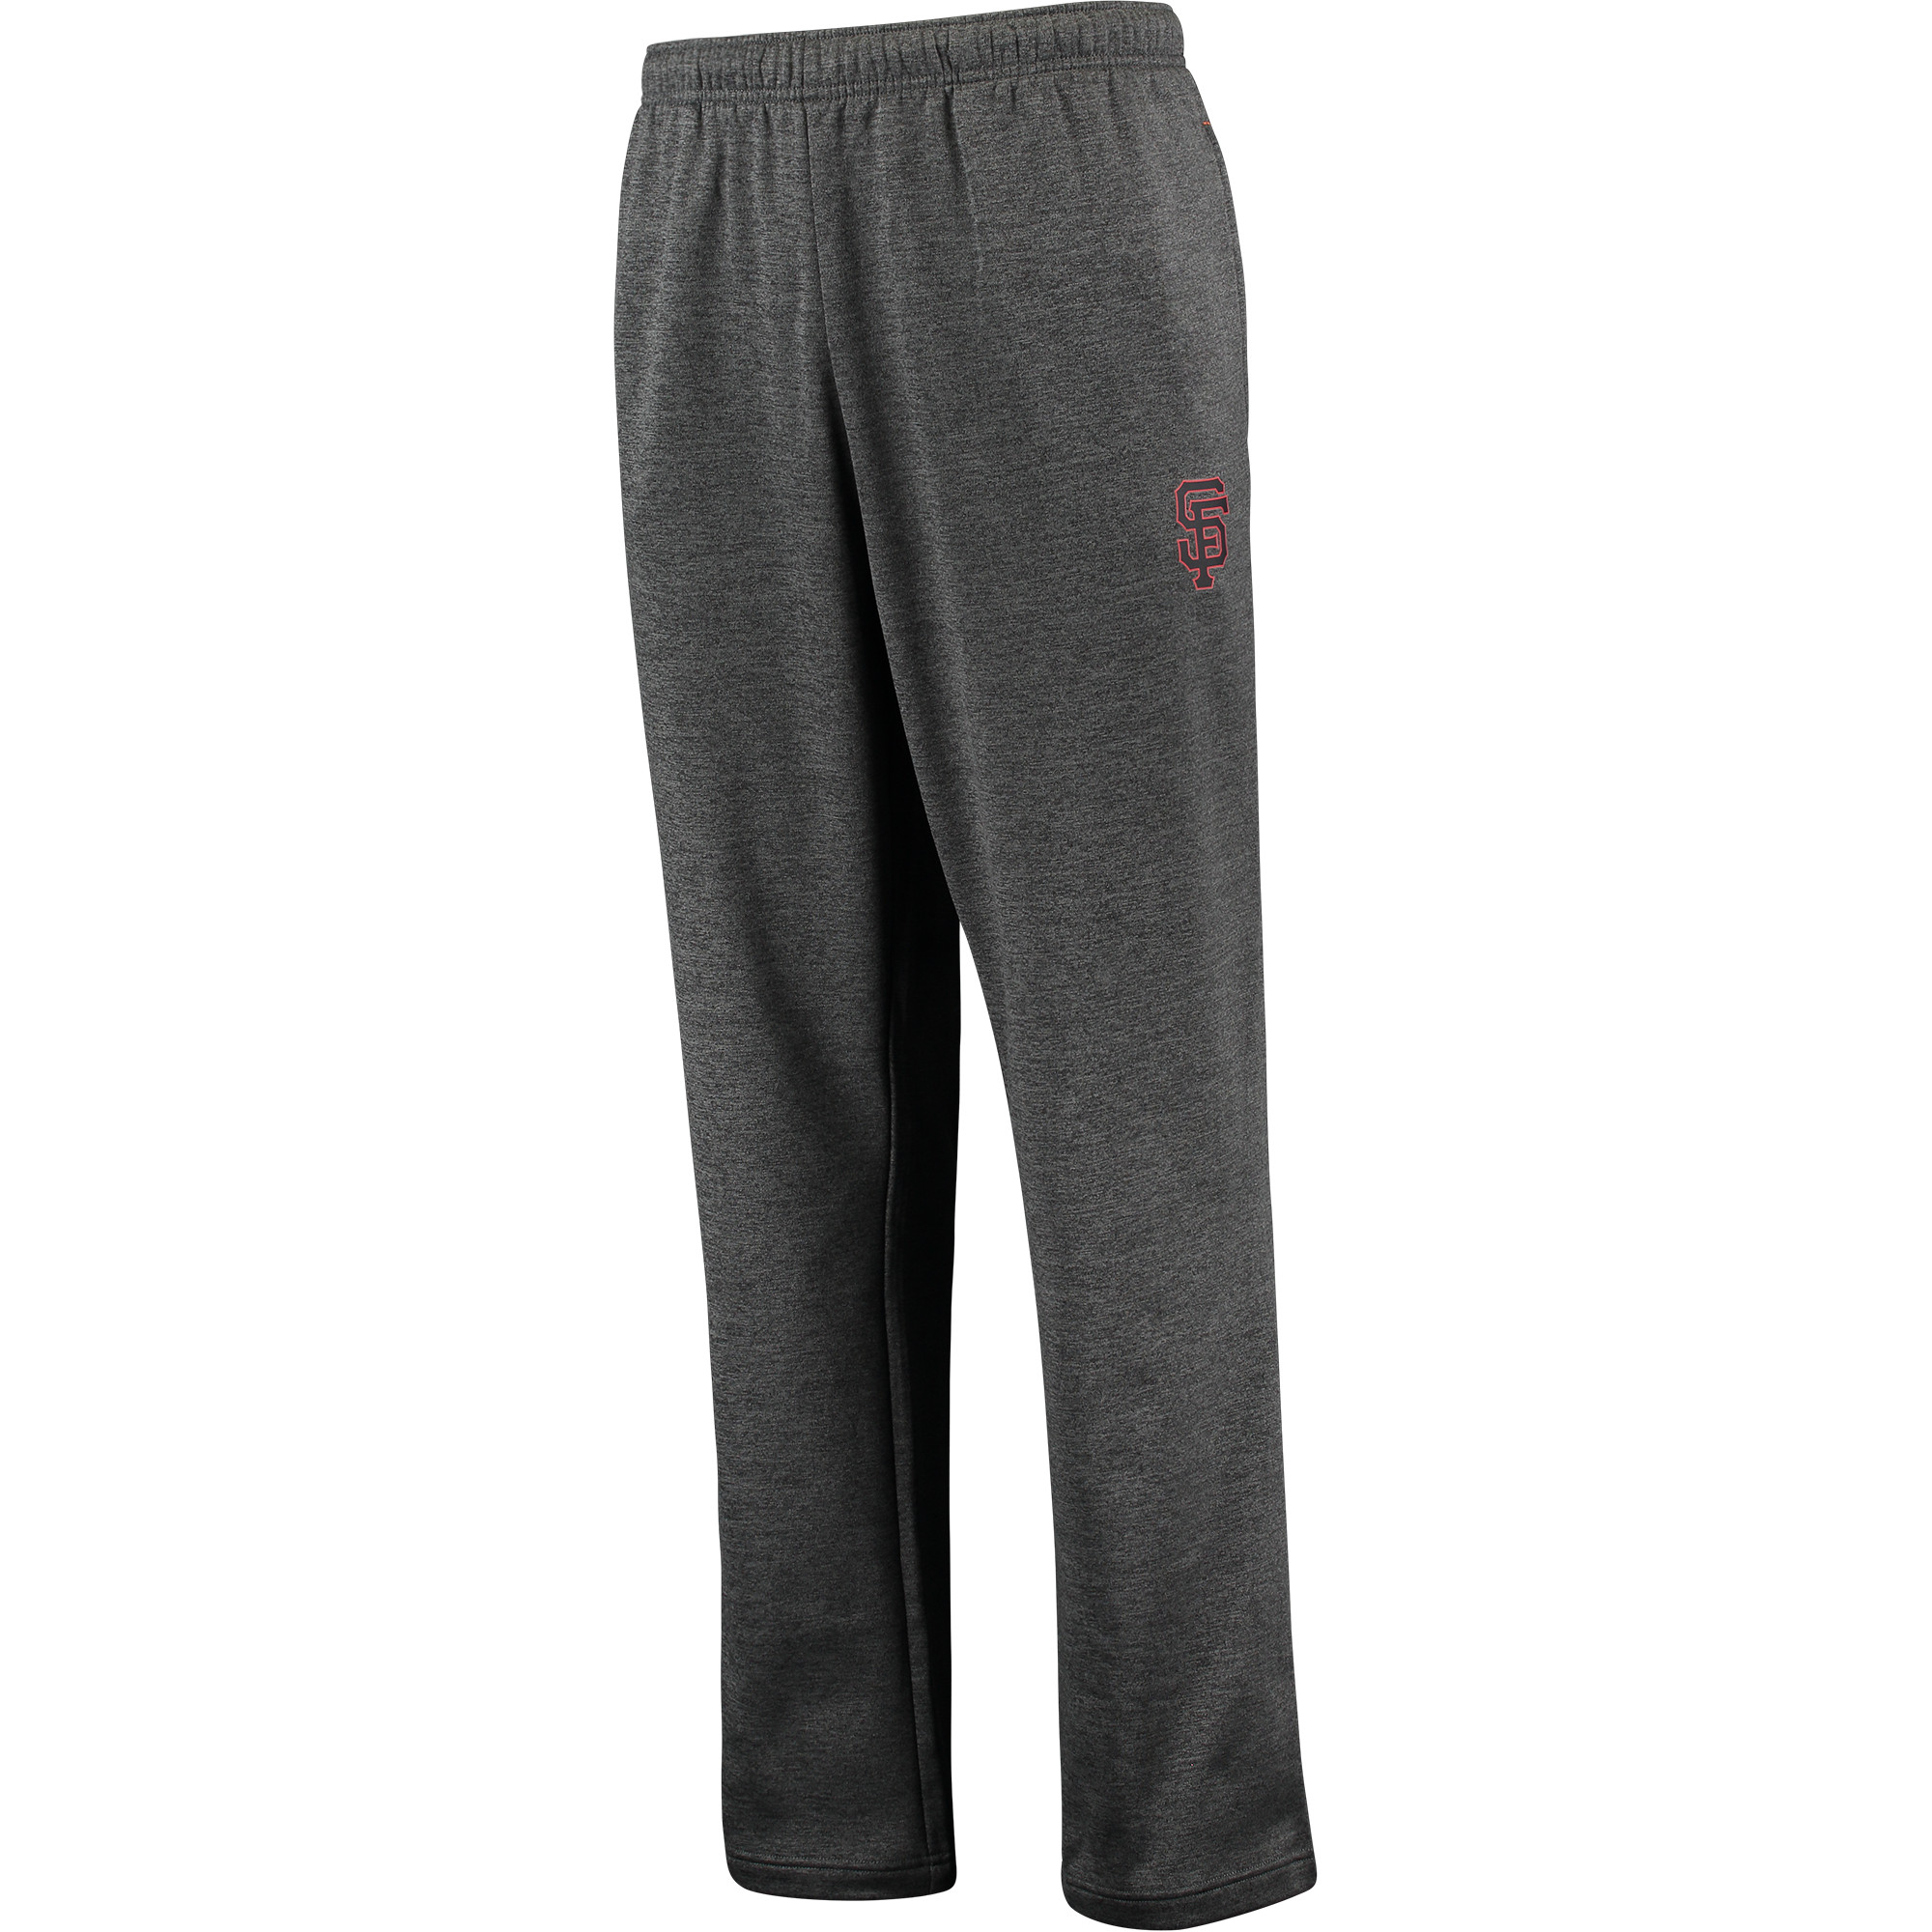 San Francisco Giants Majestic Synthetic Pants Charcoal by MAJESTIC LSG